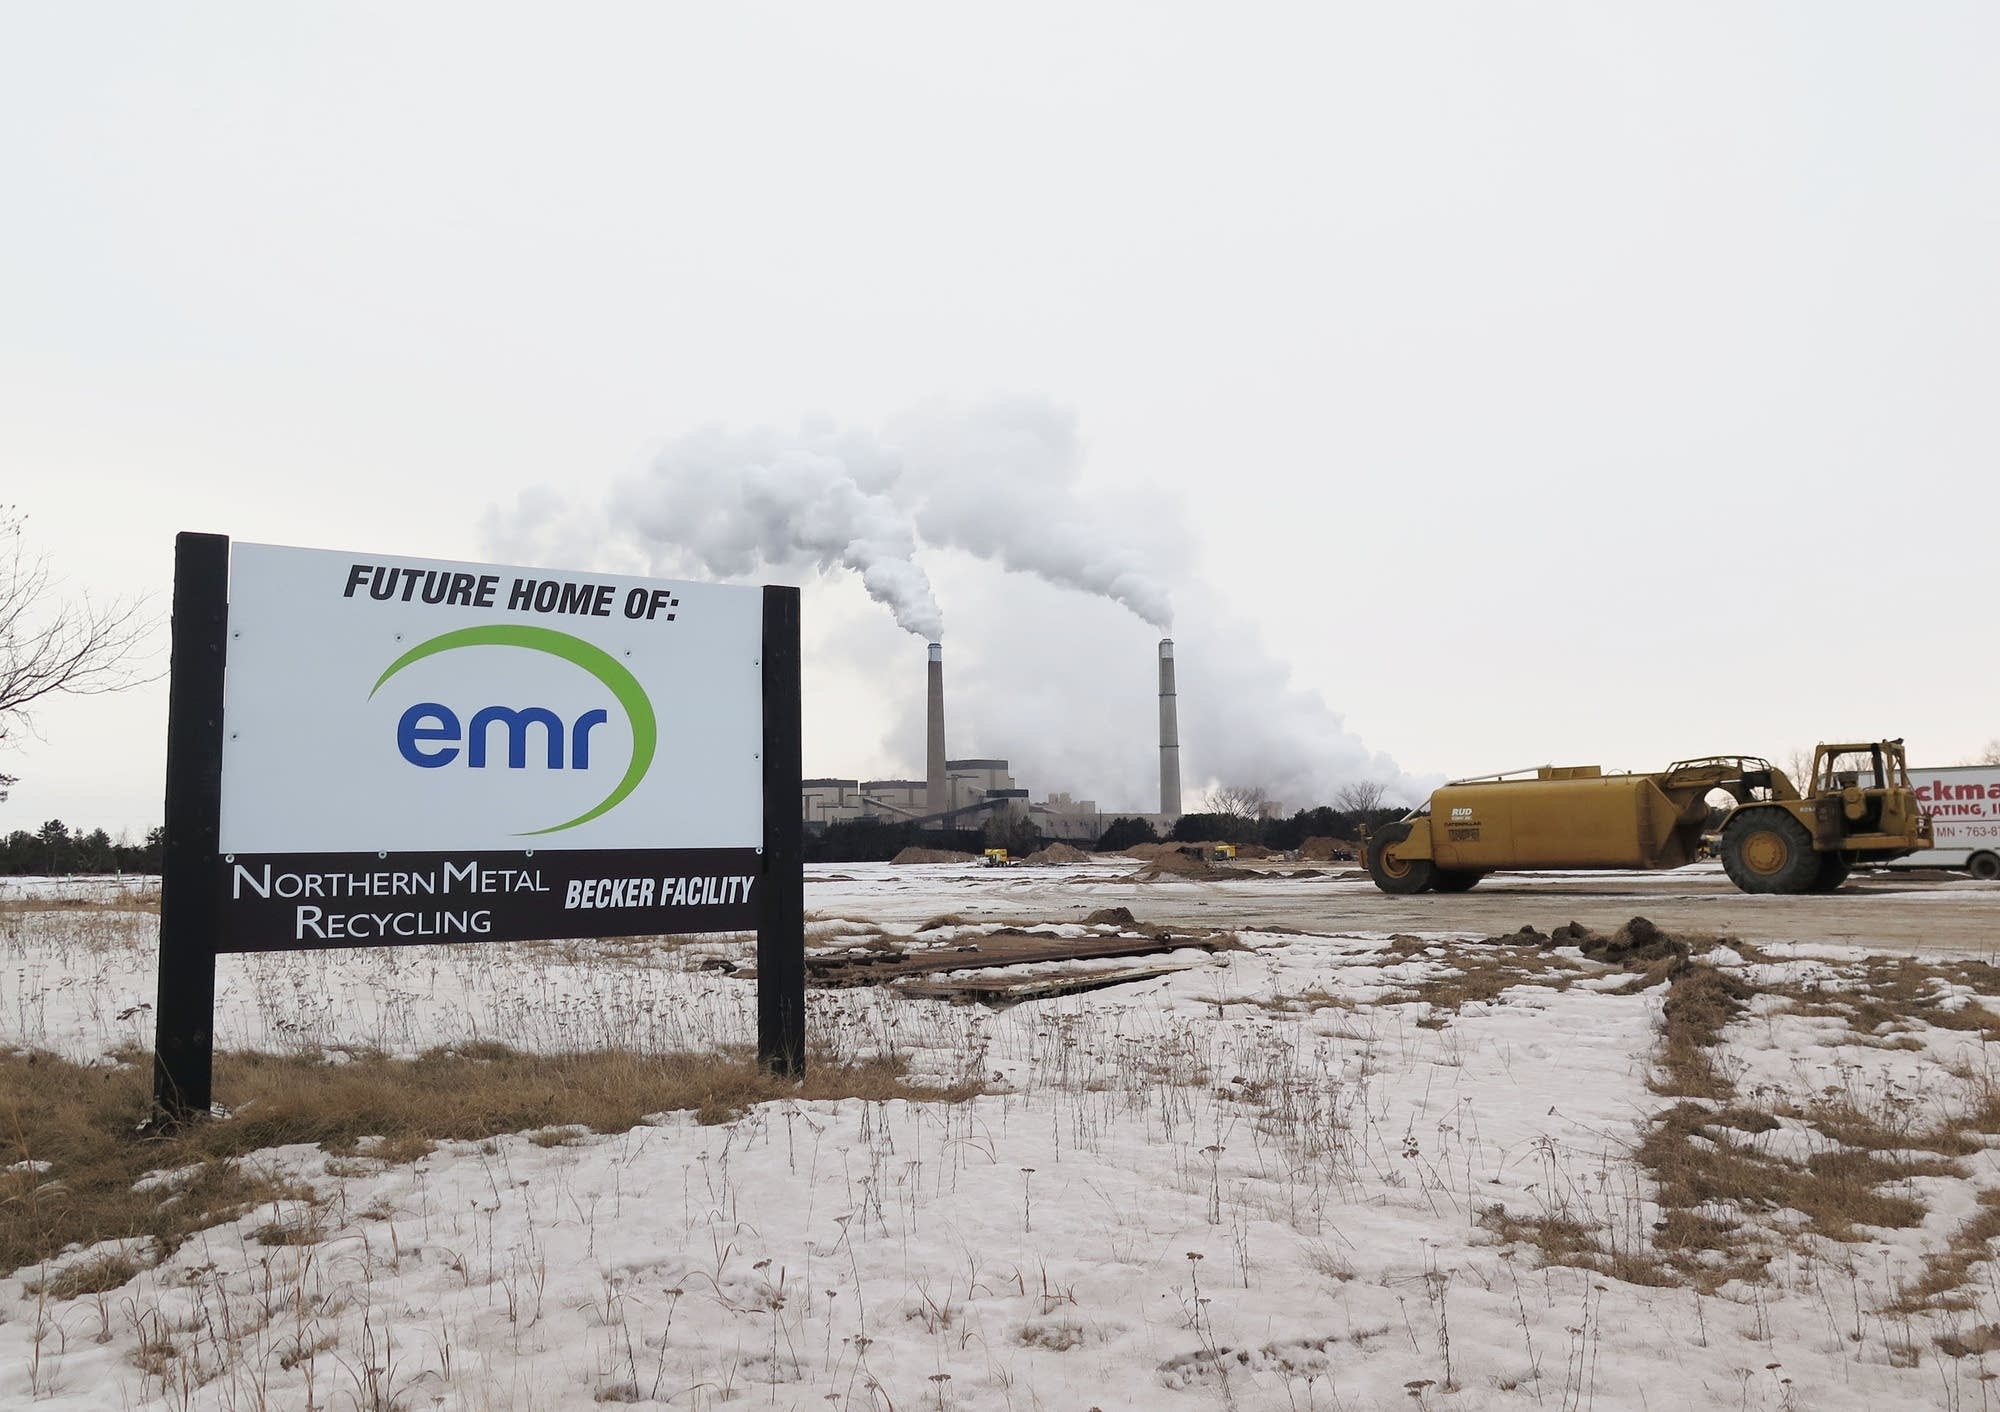 Northern Metals is moving its scrap metal recycling operations.